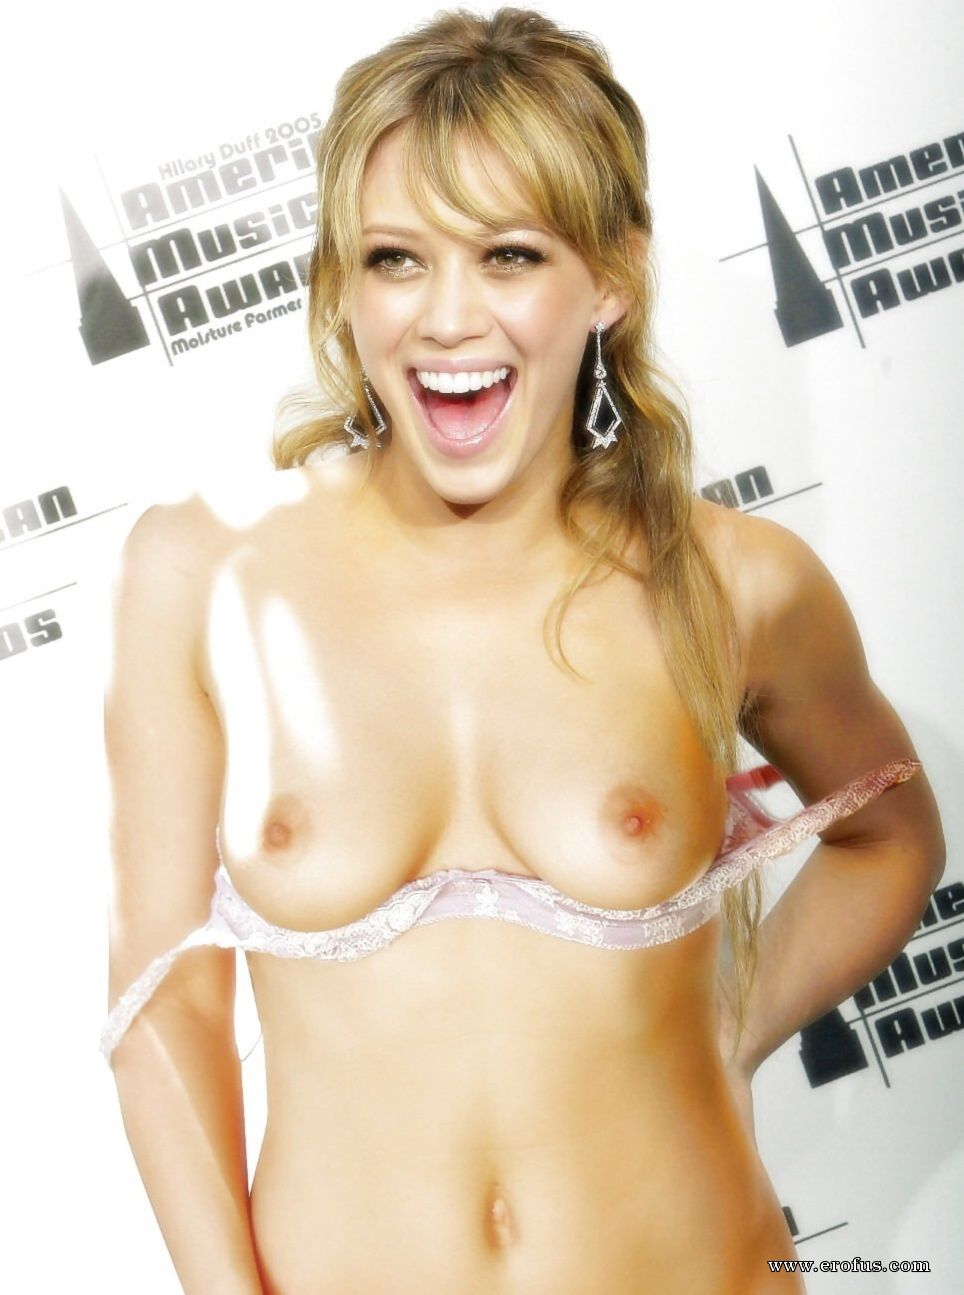 Hilary duff animated nude